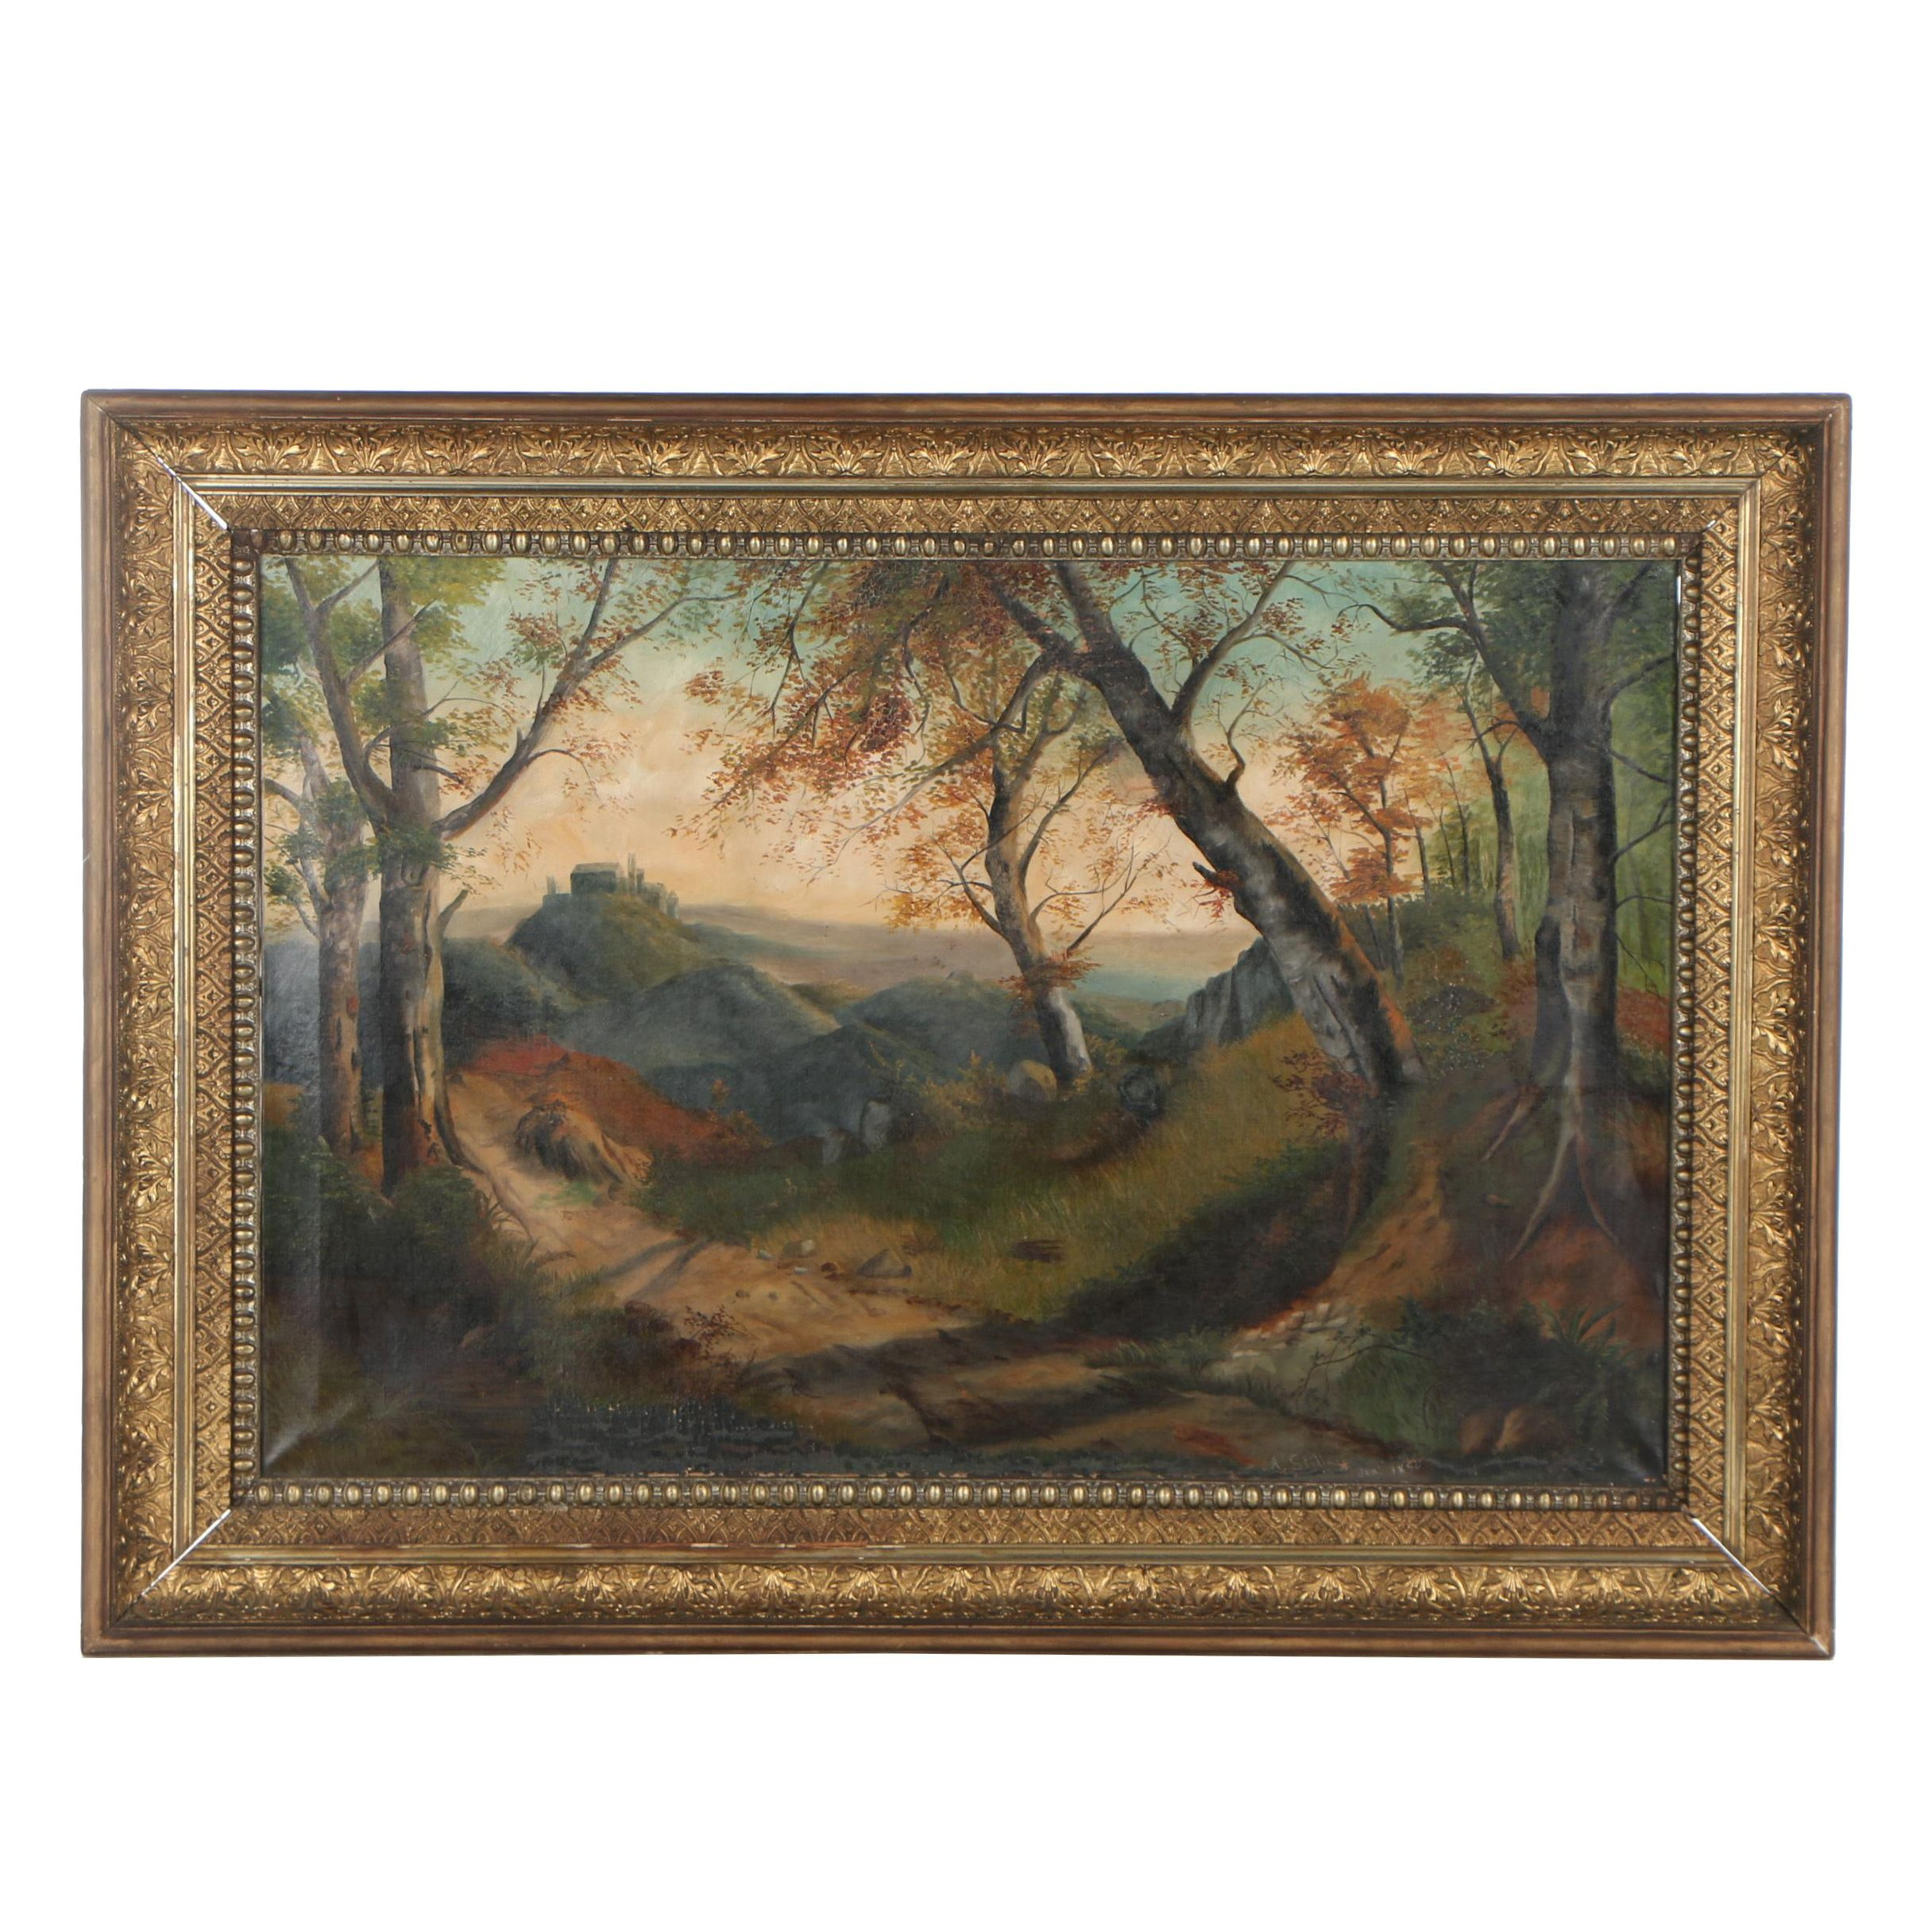 A. Stillwell 1890 Oil Painting